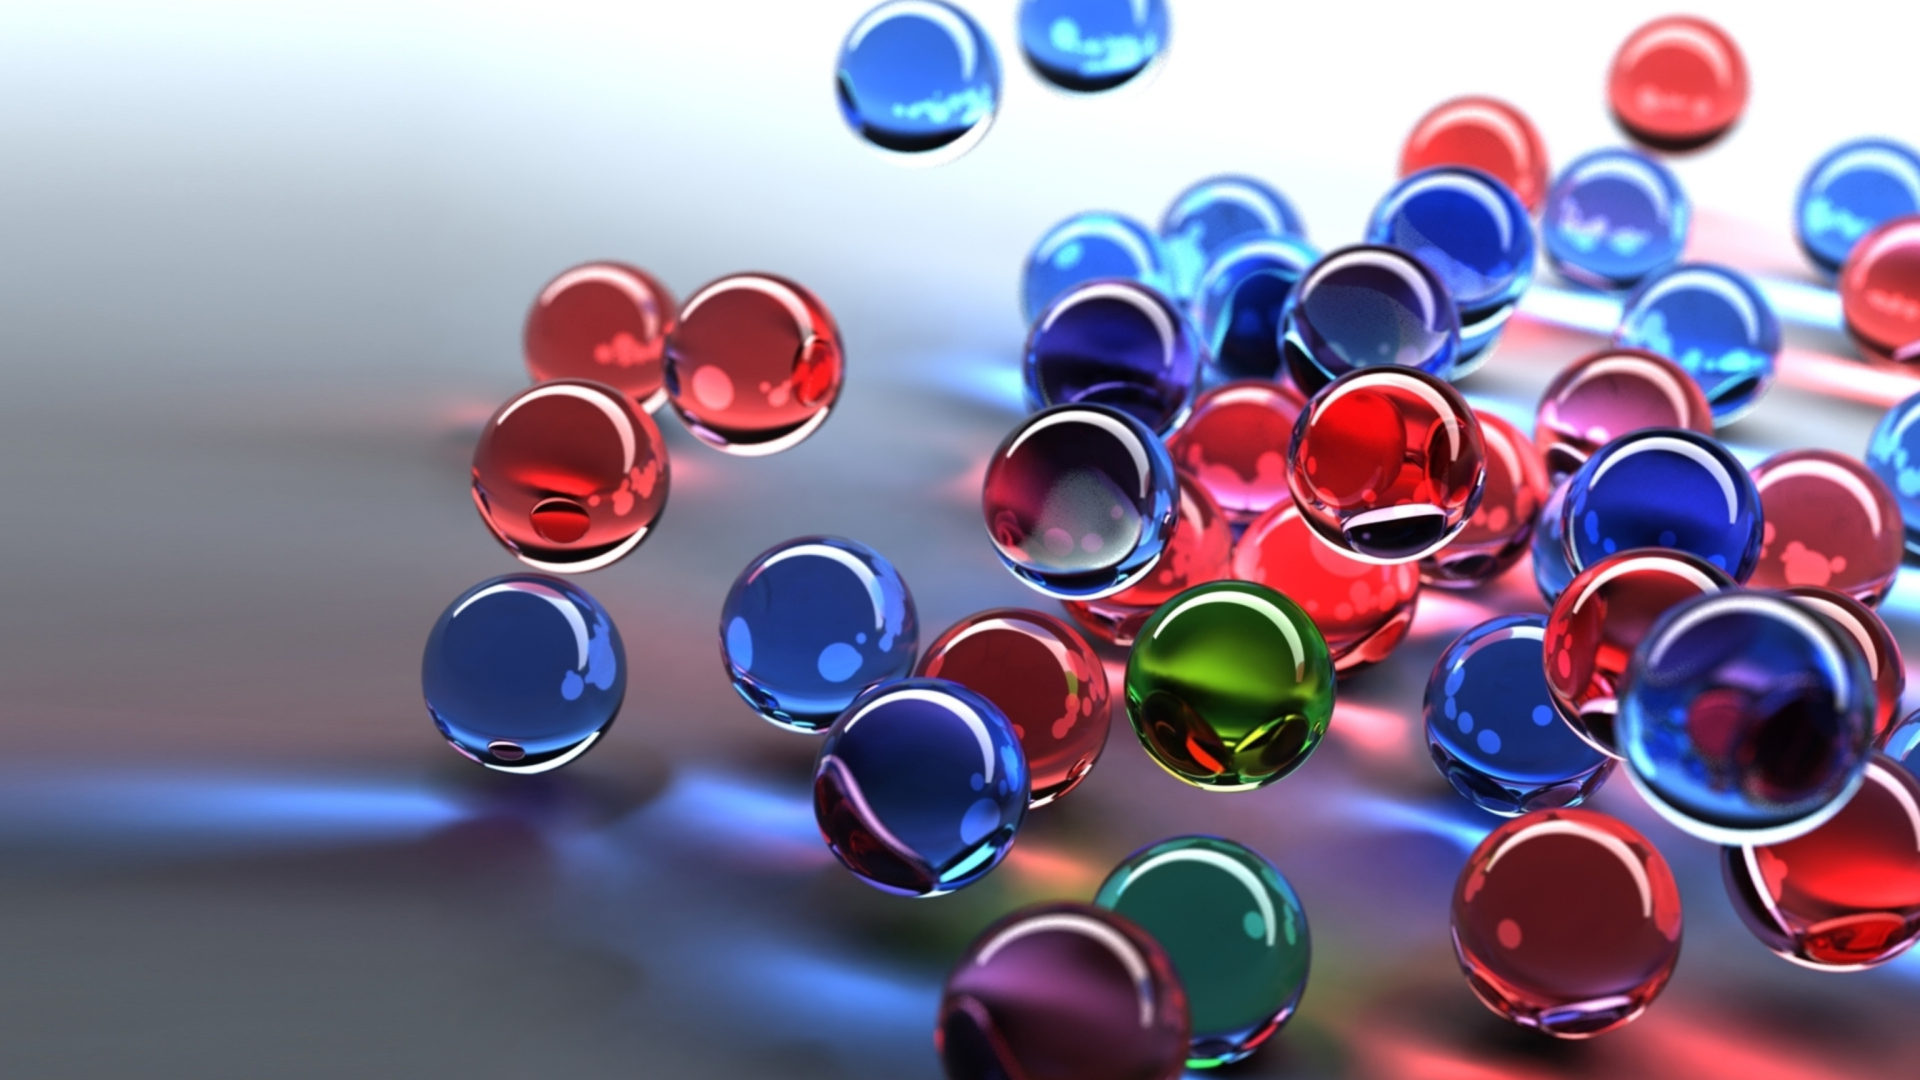 Rainbow Wallpaper Iphone X 3d Glass Balls Red Blue Green Hd Wallpaper 2880x1800